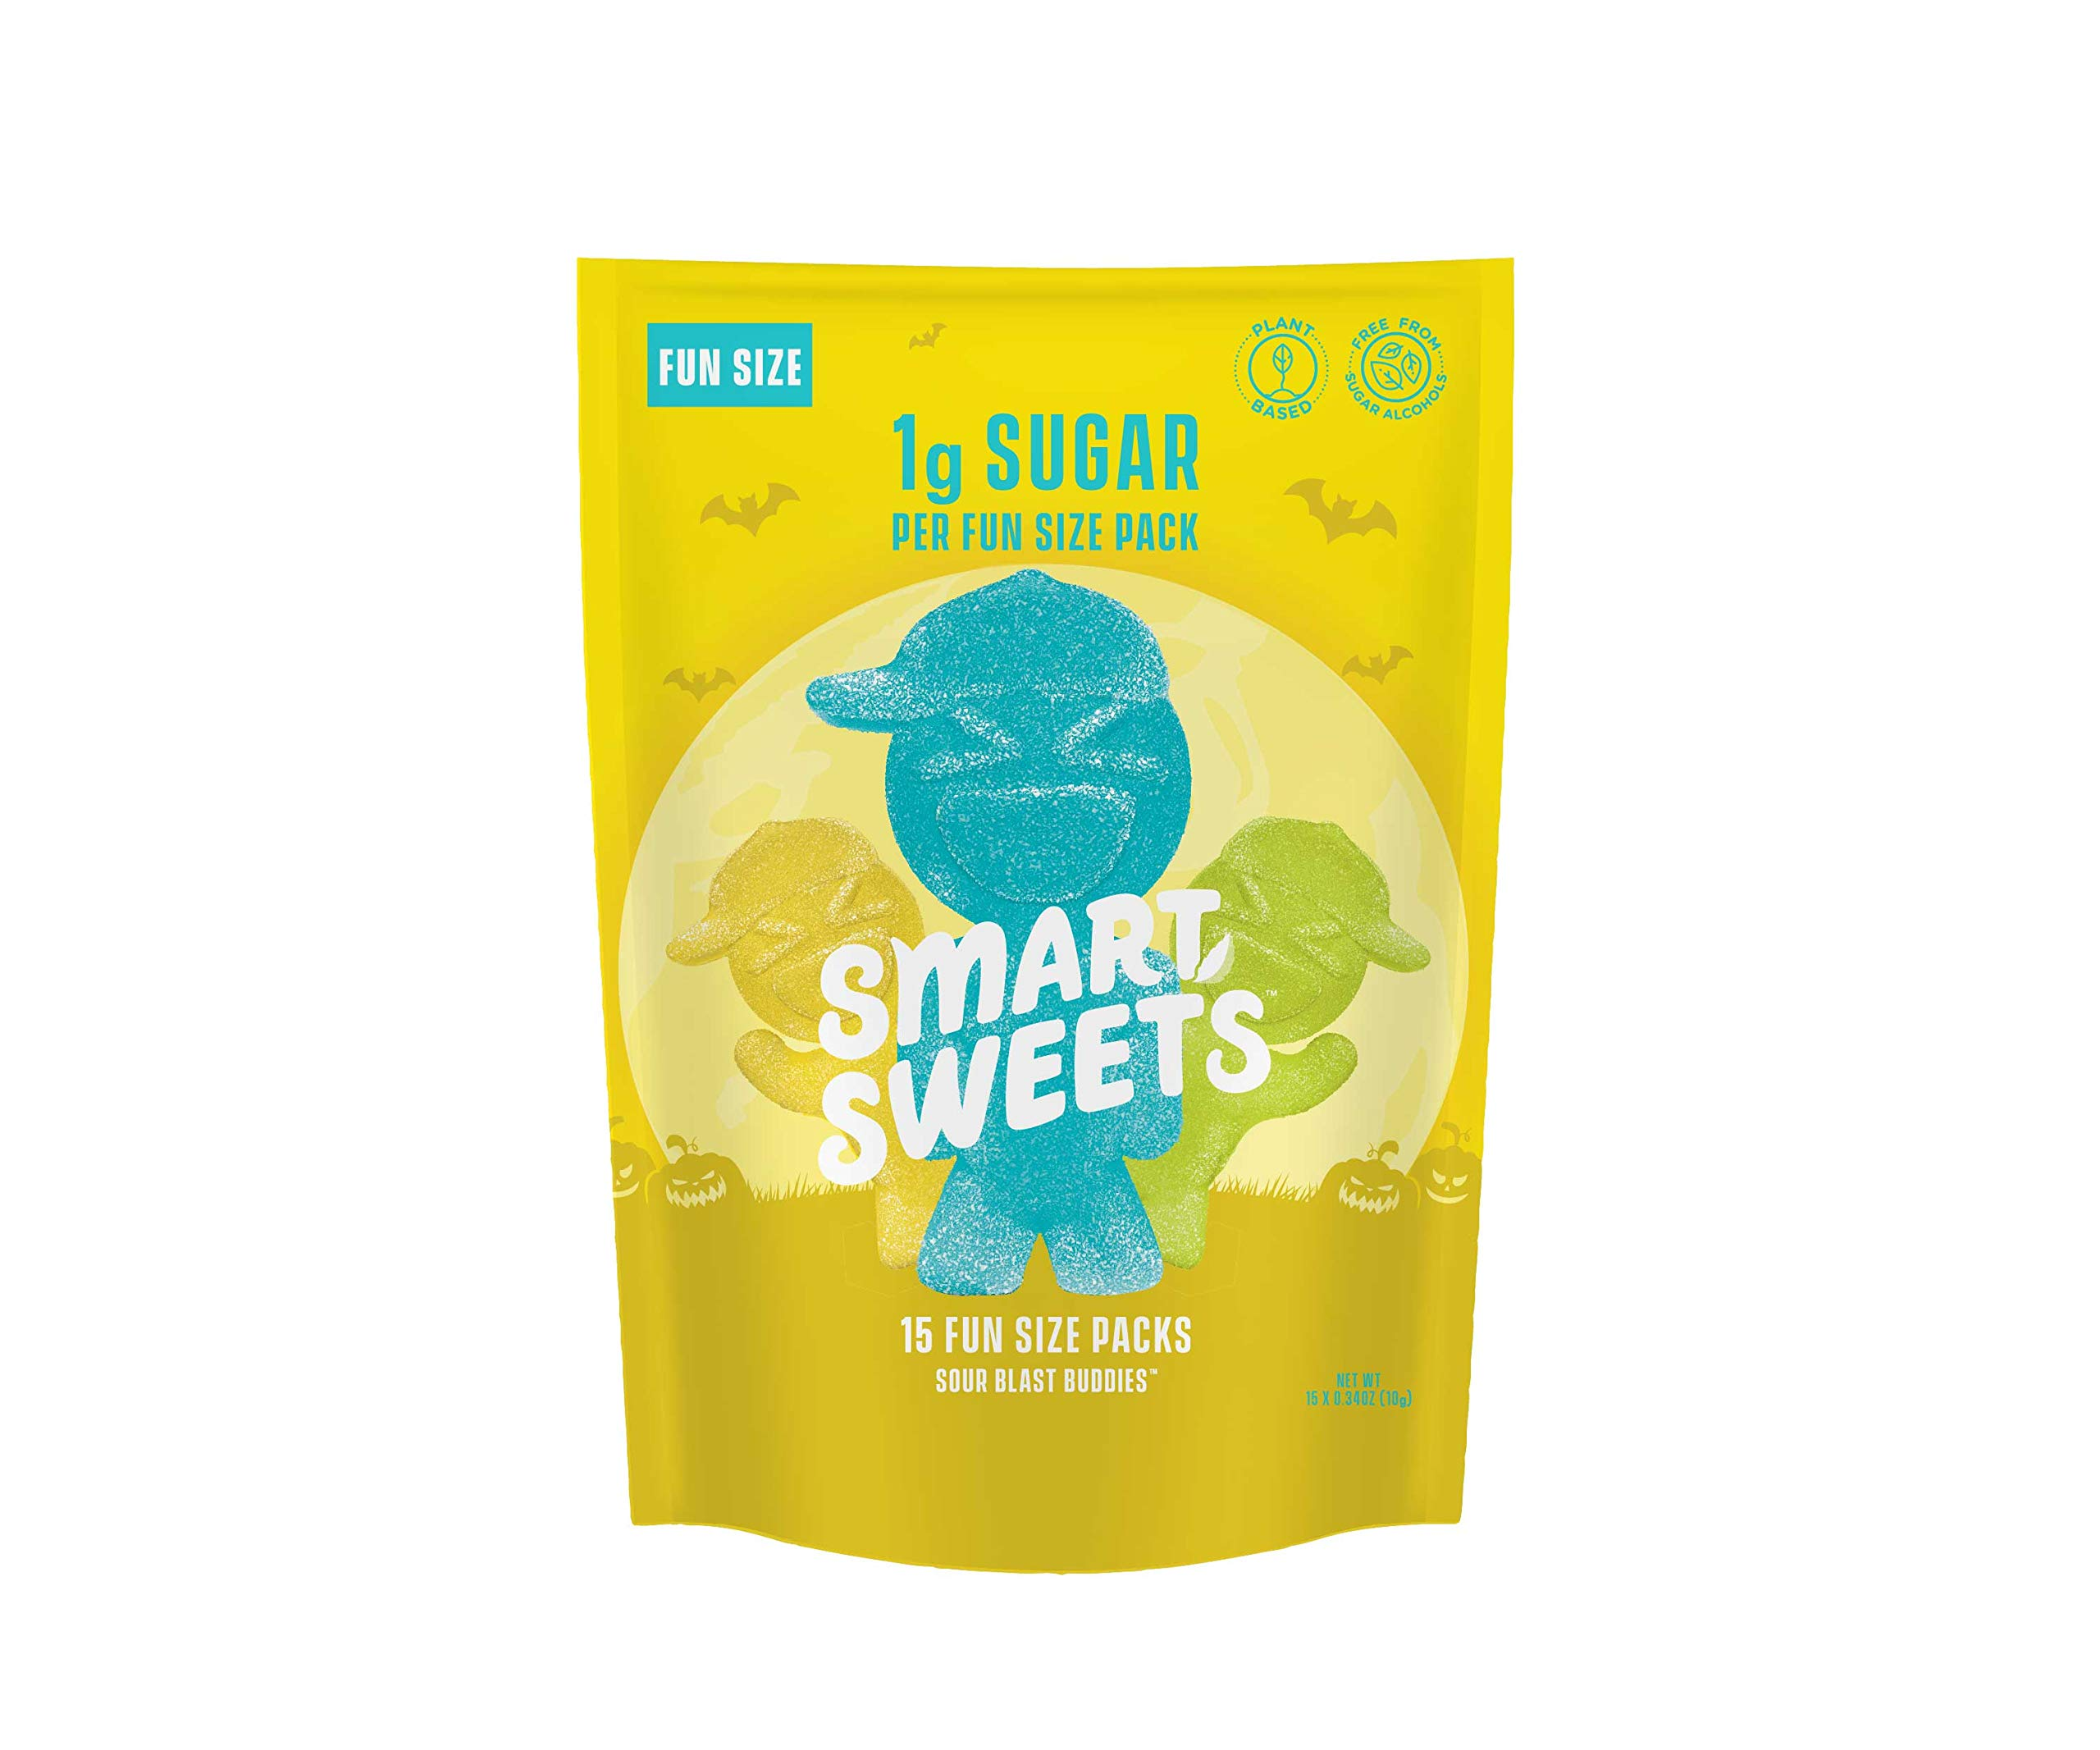 SmartSweets Low Sugar Sour Blast Buddies Candy, 0.34 Ounce Fun Size Packs, Free of Sugar Alcohols and No Artificial Sweeteners, Sweetened with Stevia, Natural Fruit Flavors, 15 Count by SmartSweets